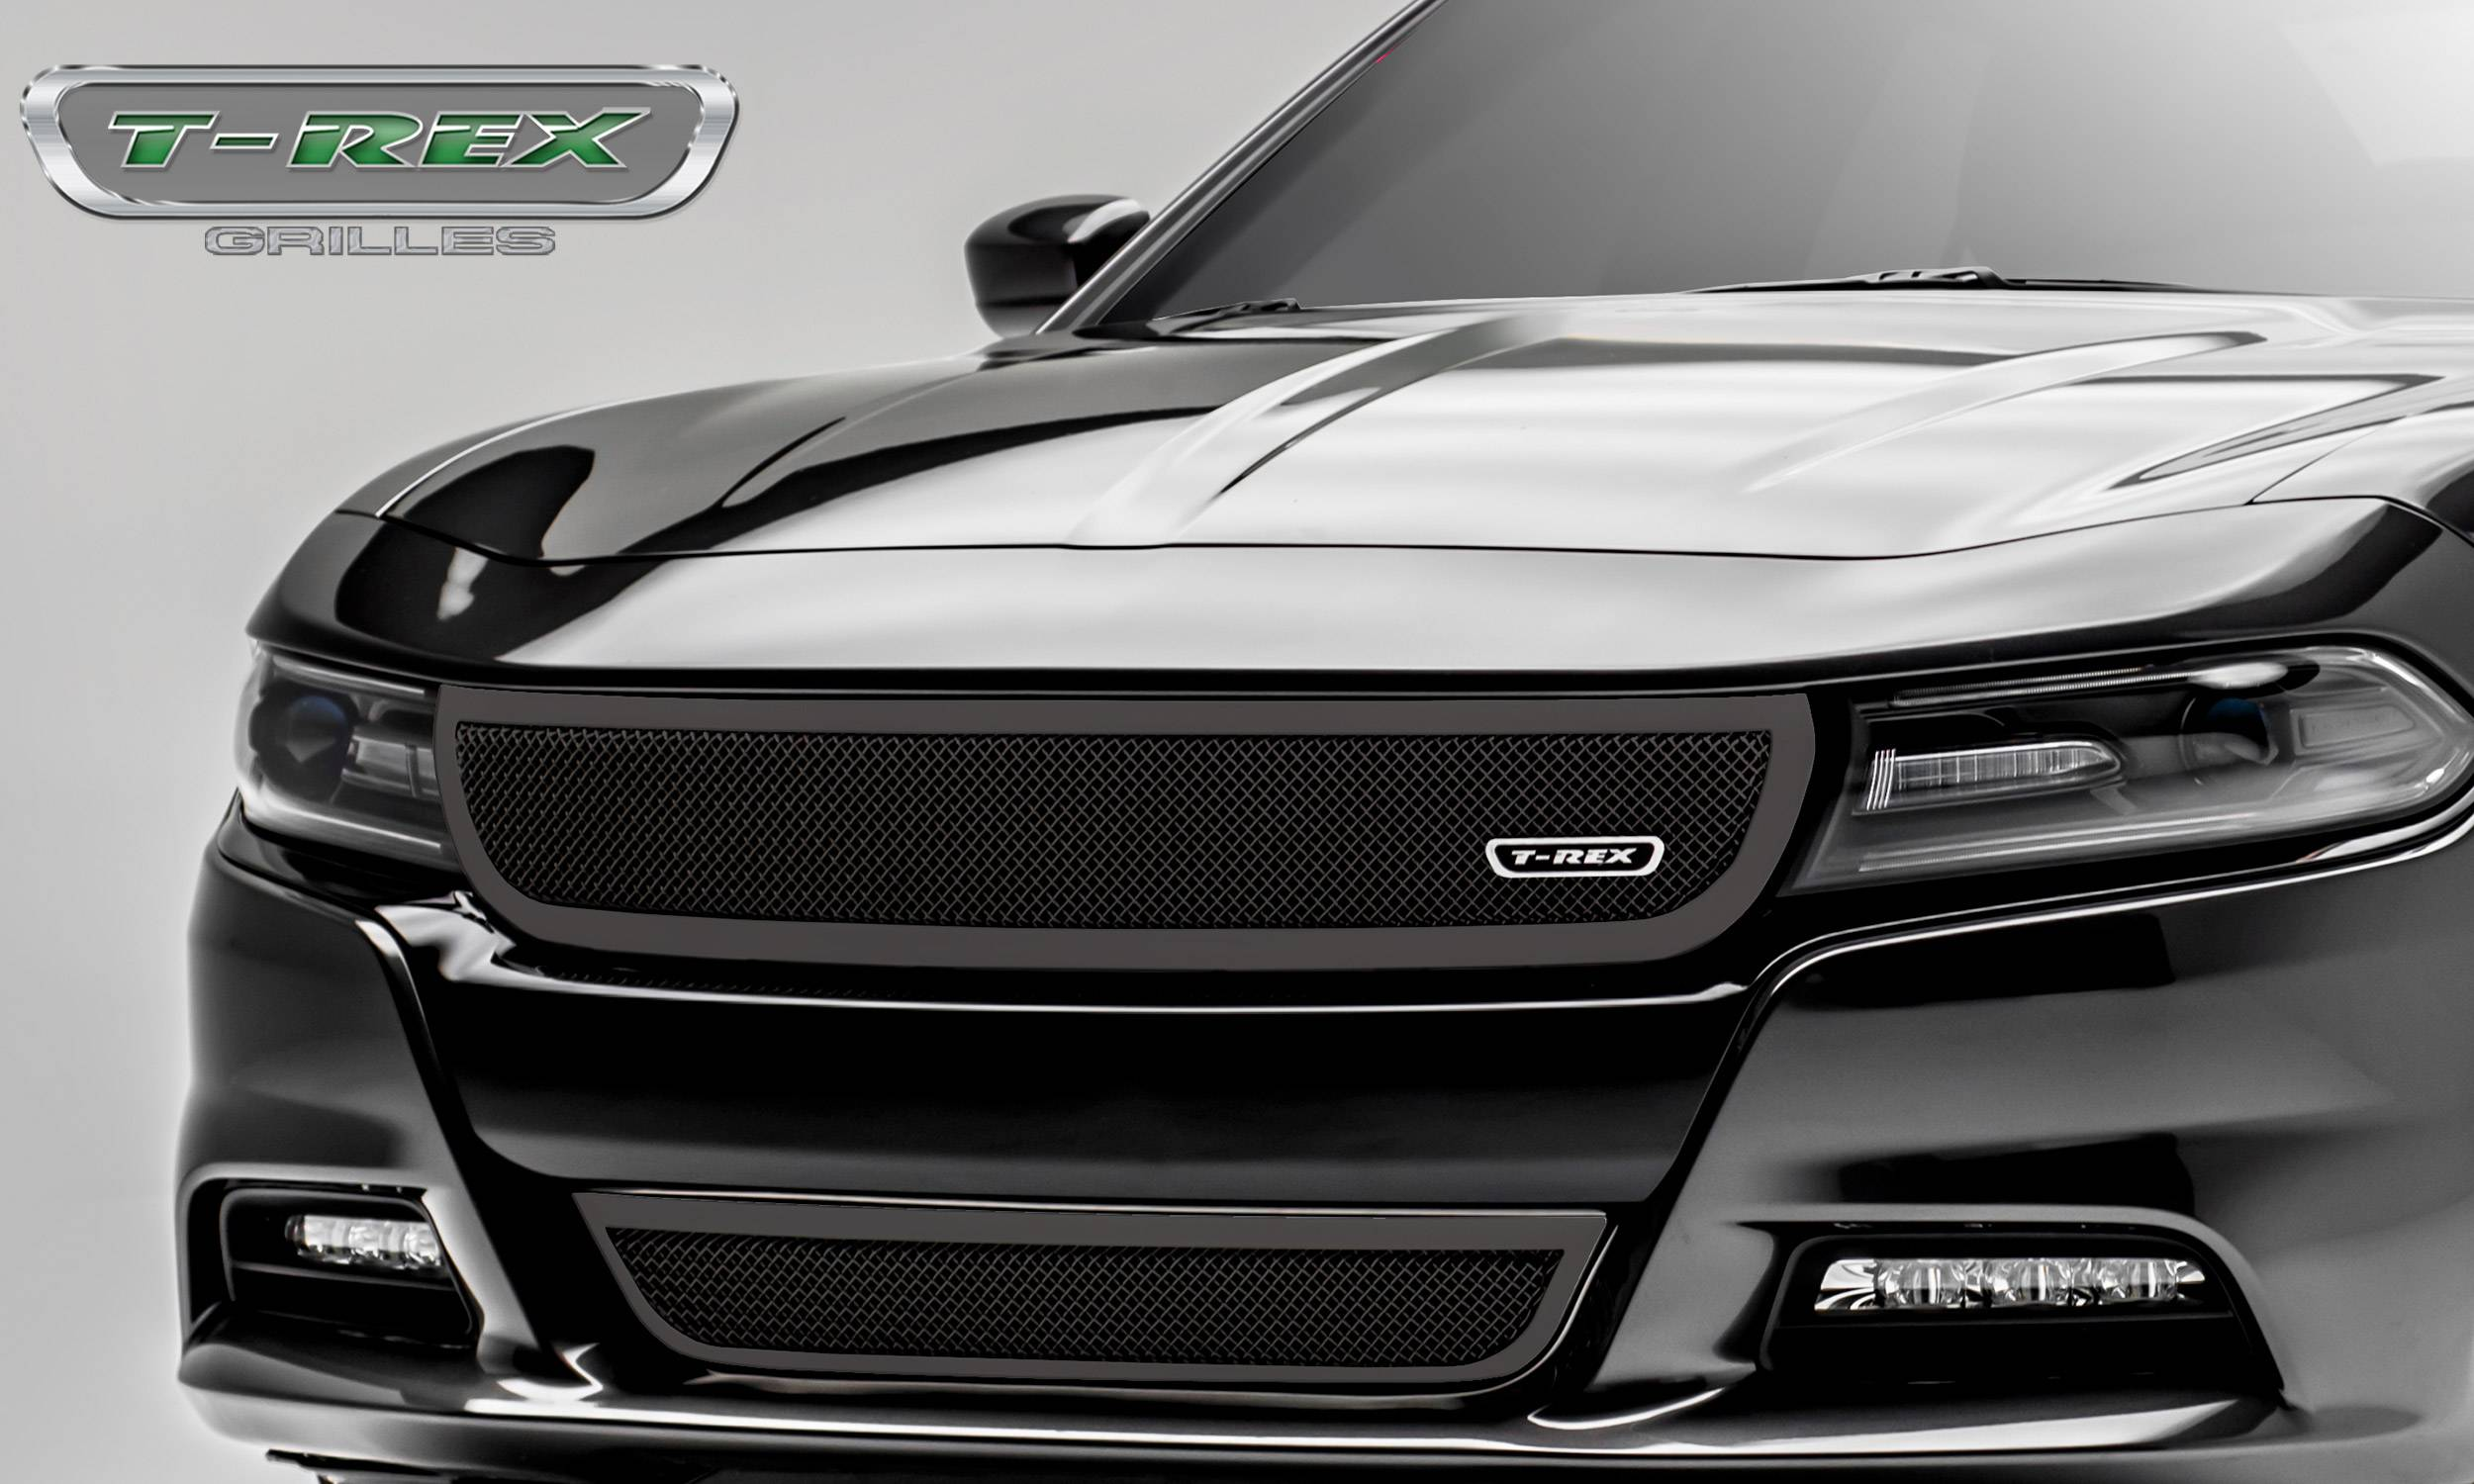 Dodge Charger - Upper Class - 1 Pc Main Grille - Overlay/Insert - Black Powder Coated - Pt # 51480